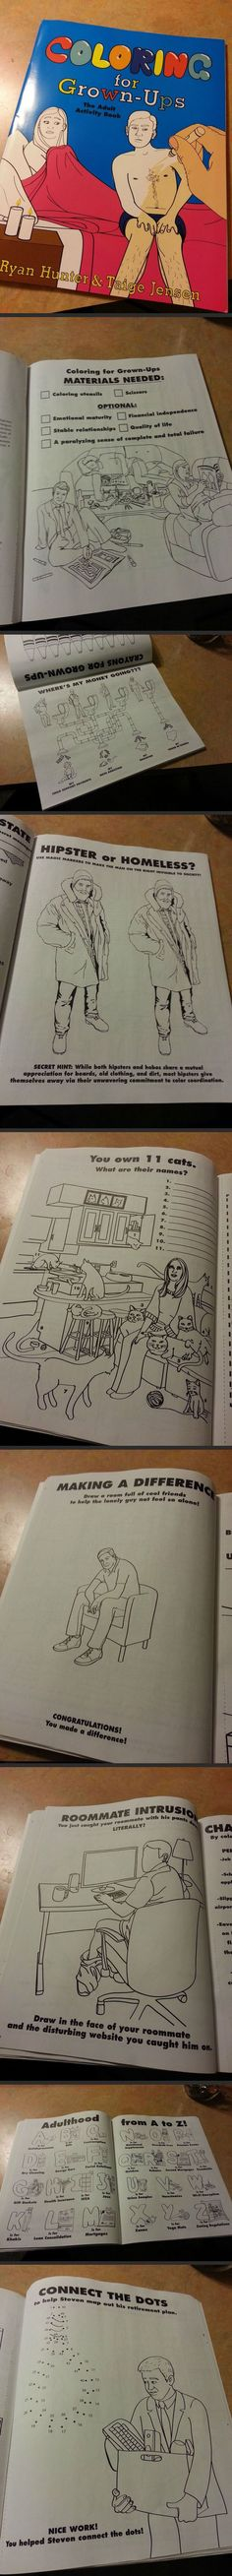 Coloring for Grown-Ups: The Adult Activity Book... For nick